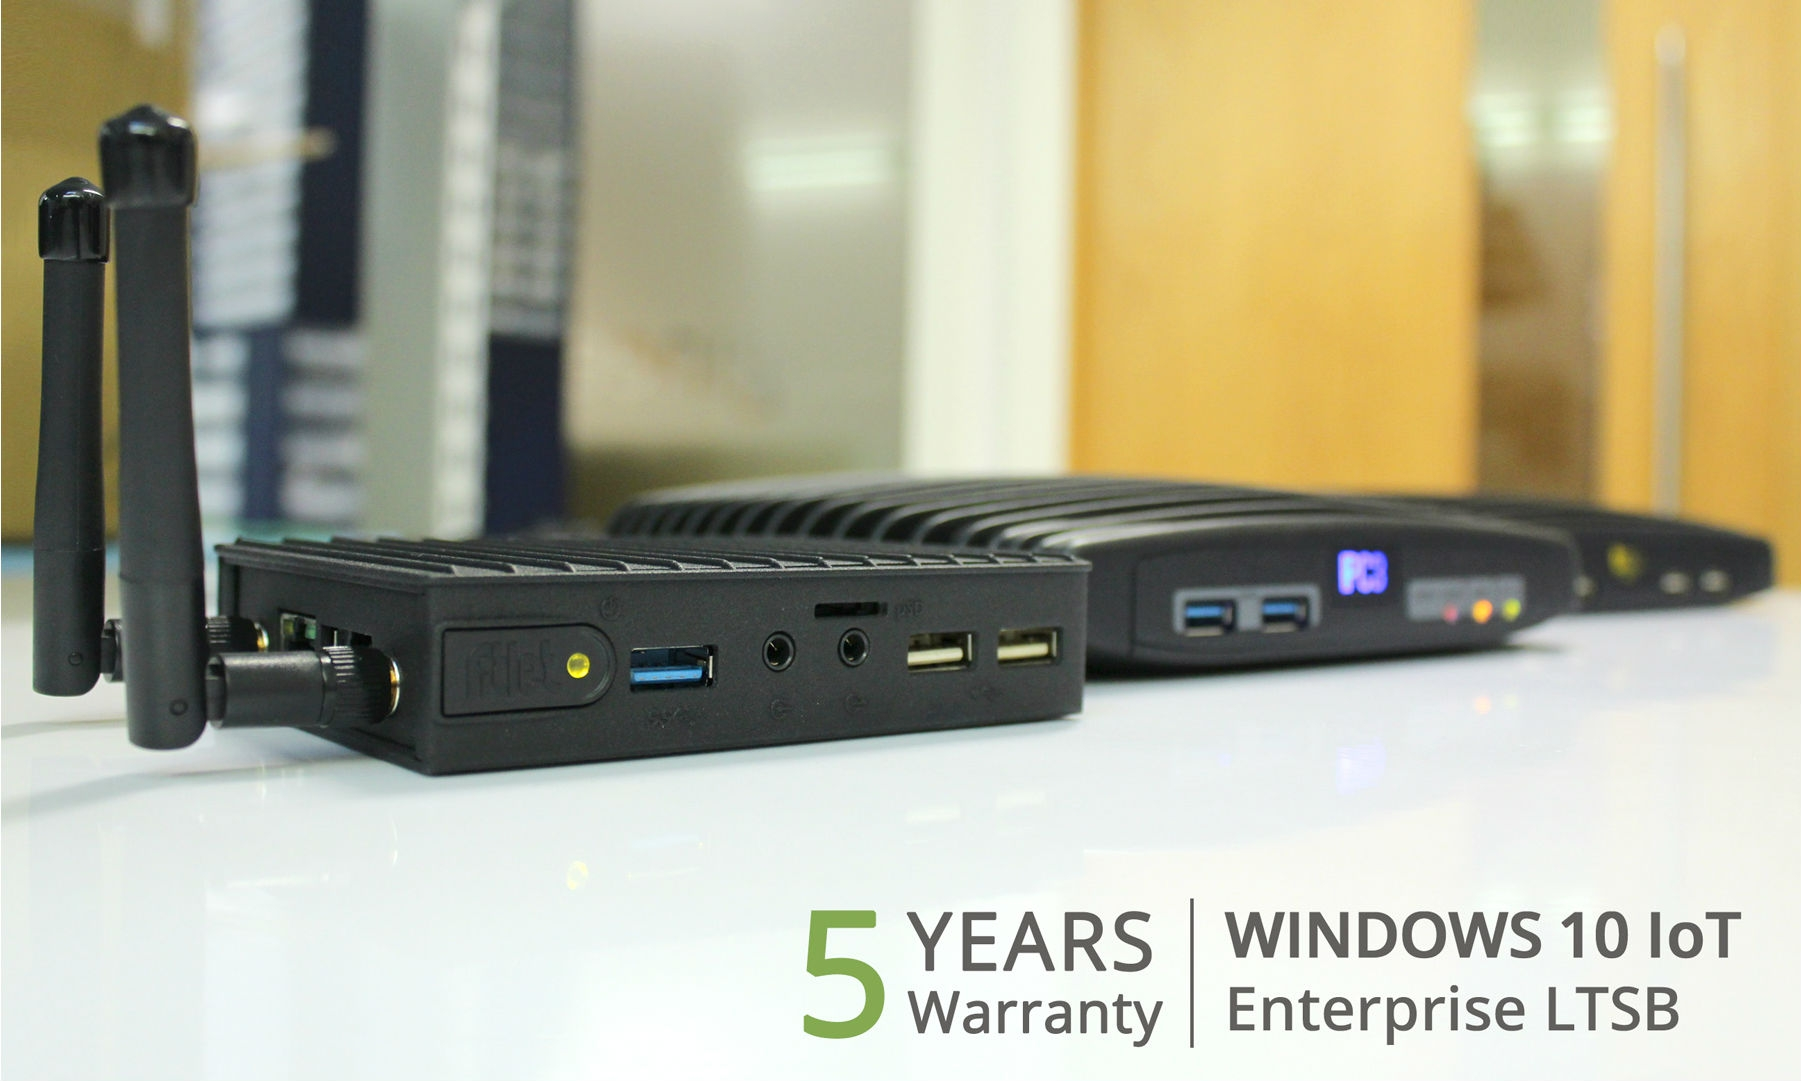 Tiny Green PC's Fanless PC with Windows 10 IoT Enterprise option